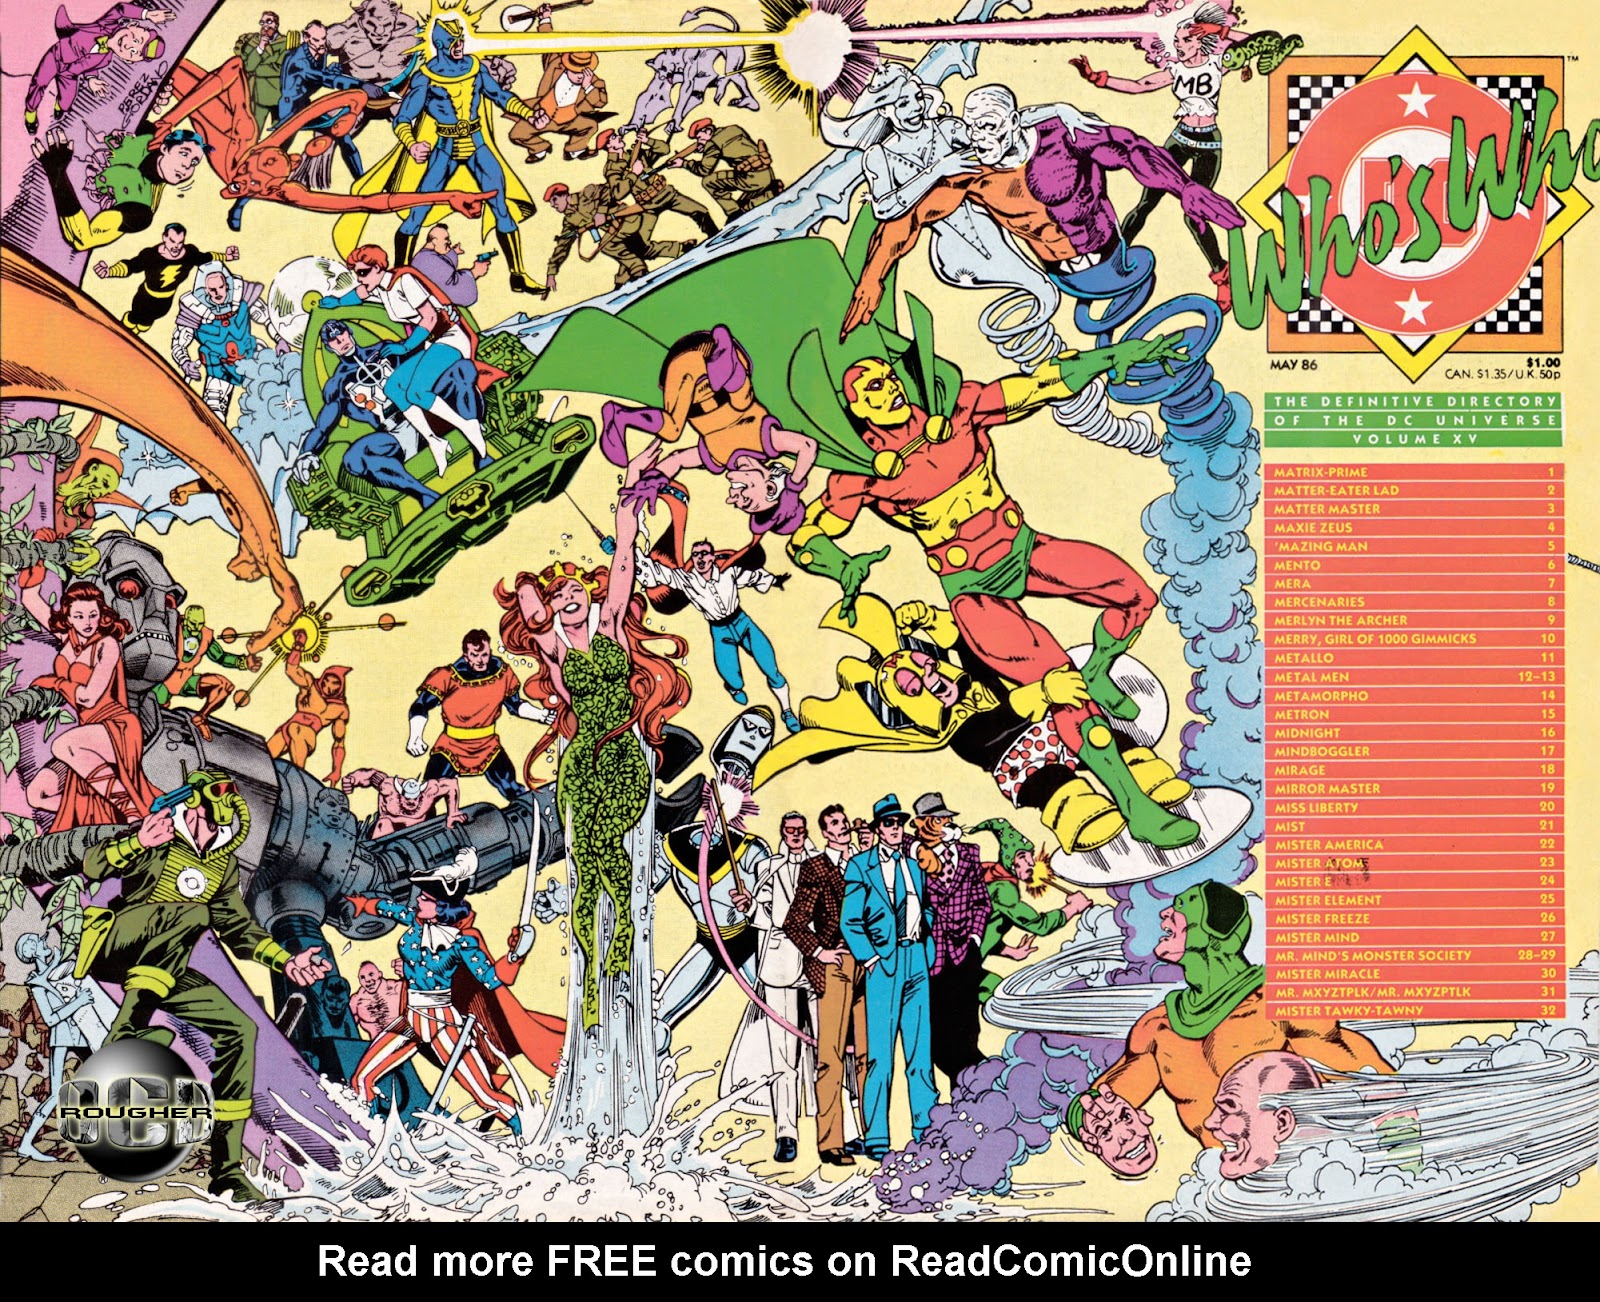 Whos Who: The Definitive Directory of the DC Universe 15 Page 1